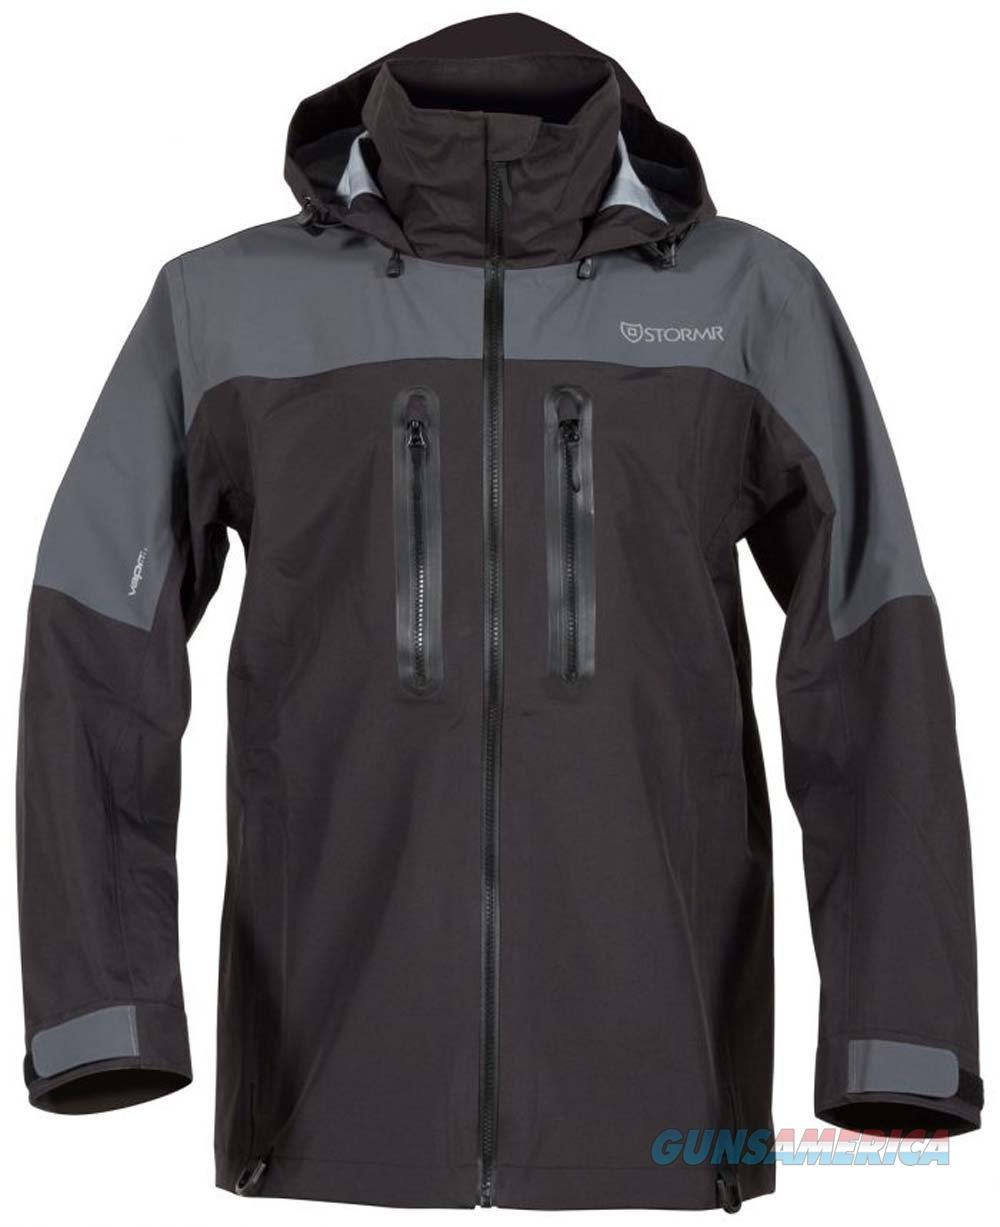 Stormr Aero Mid Weight Jacket Black MD NEW  Non-Guns > Hunting Clothing and Equipment > Clothing > Gloves